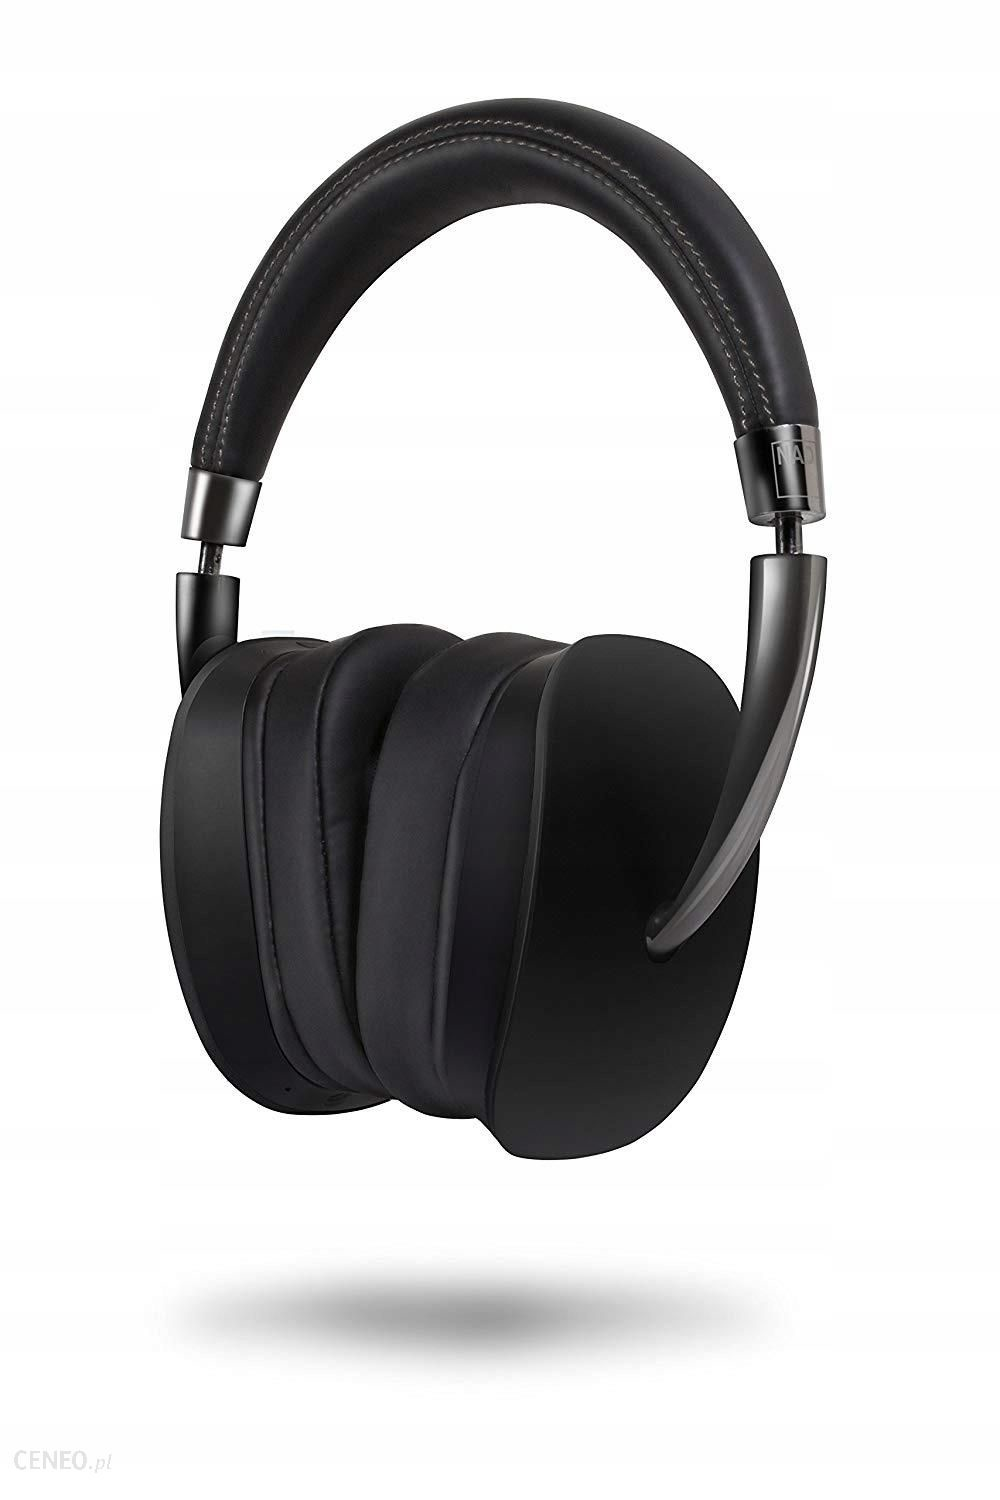 NAD VISO HP70 Wireless Active Noise Cancelling Headphone